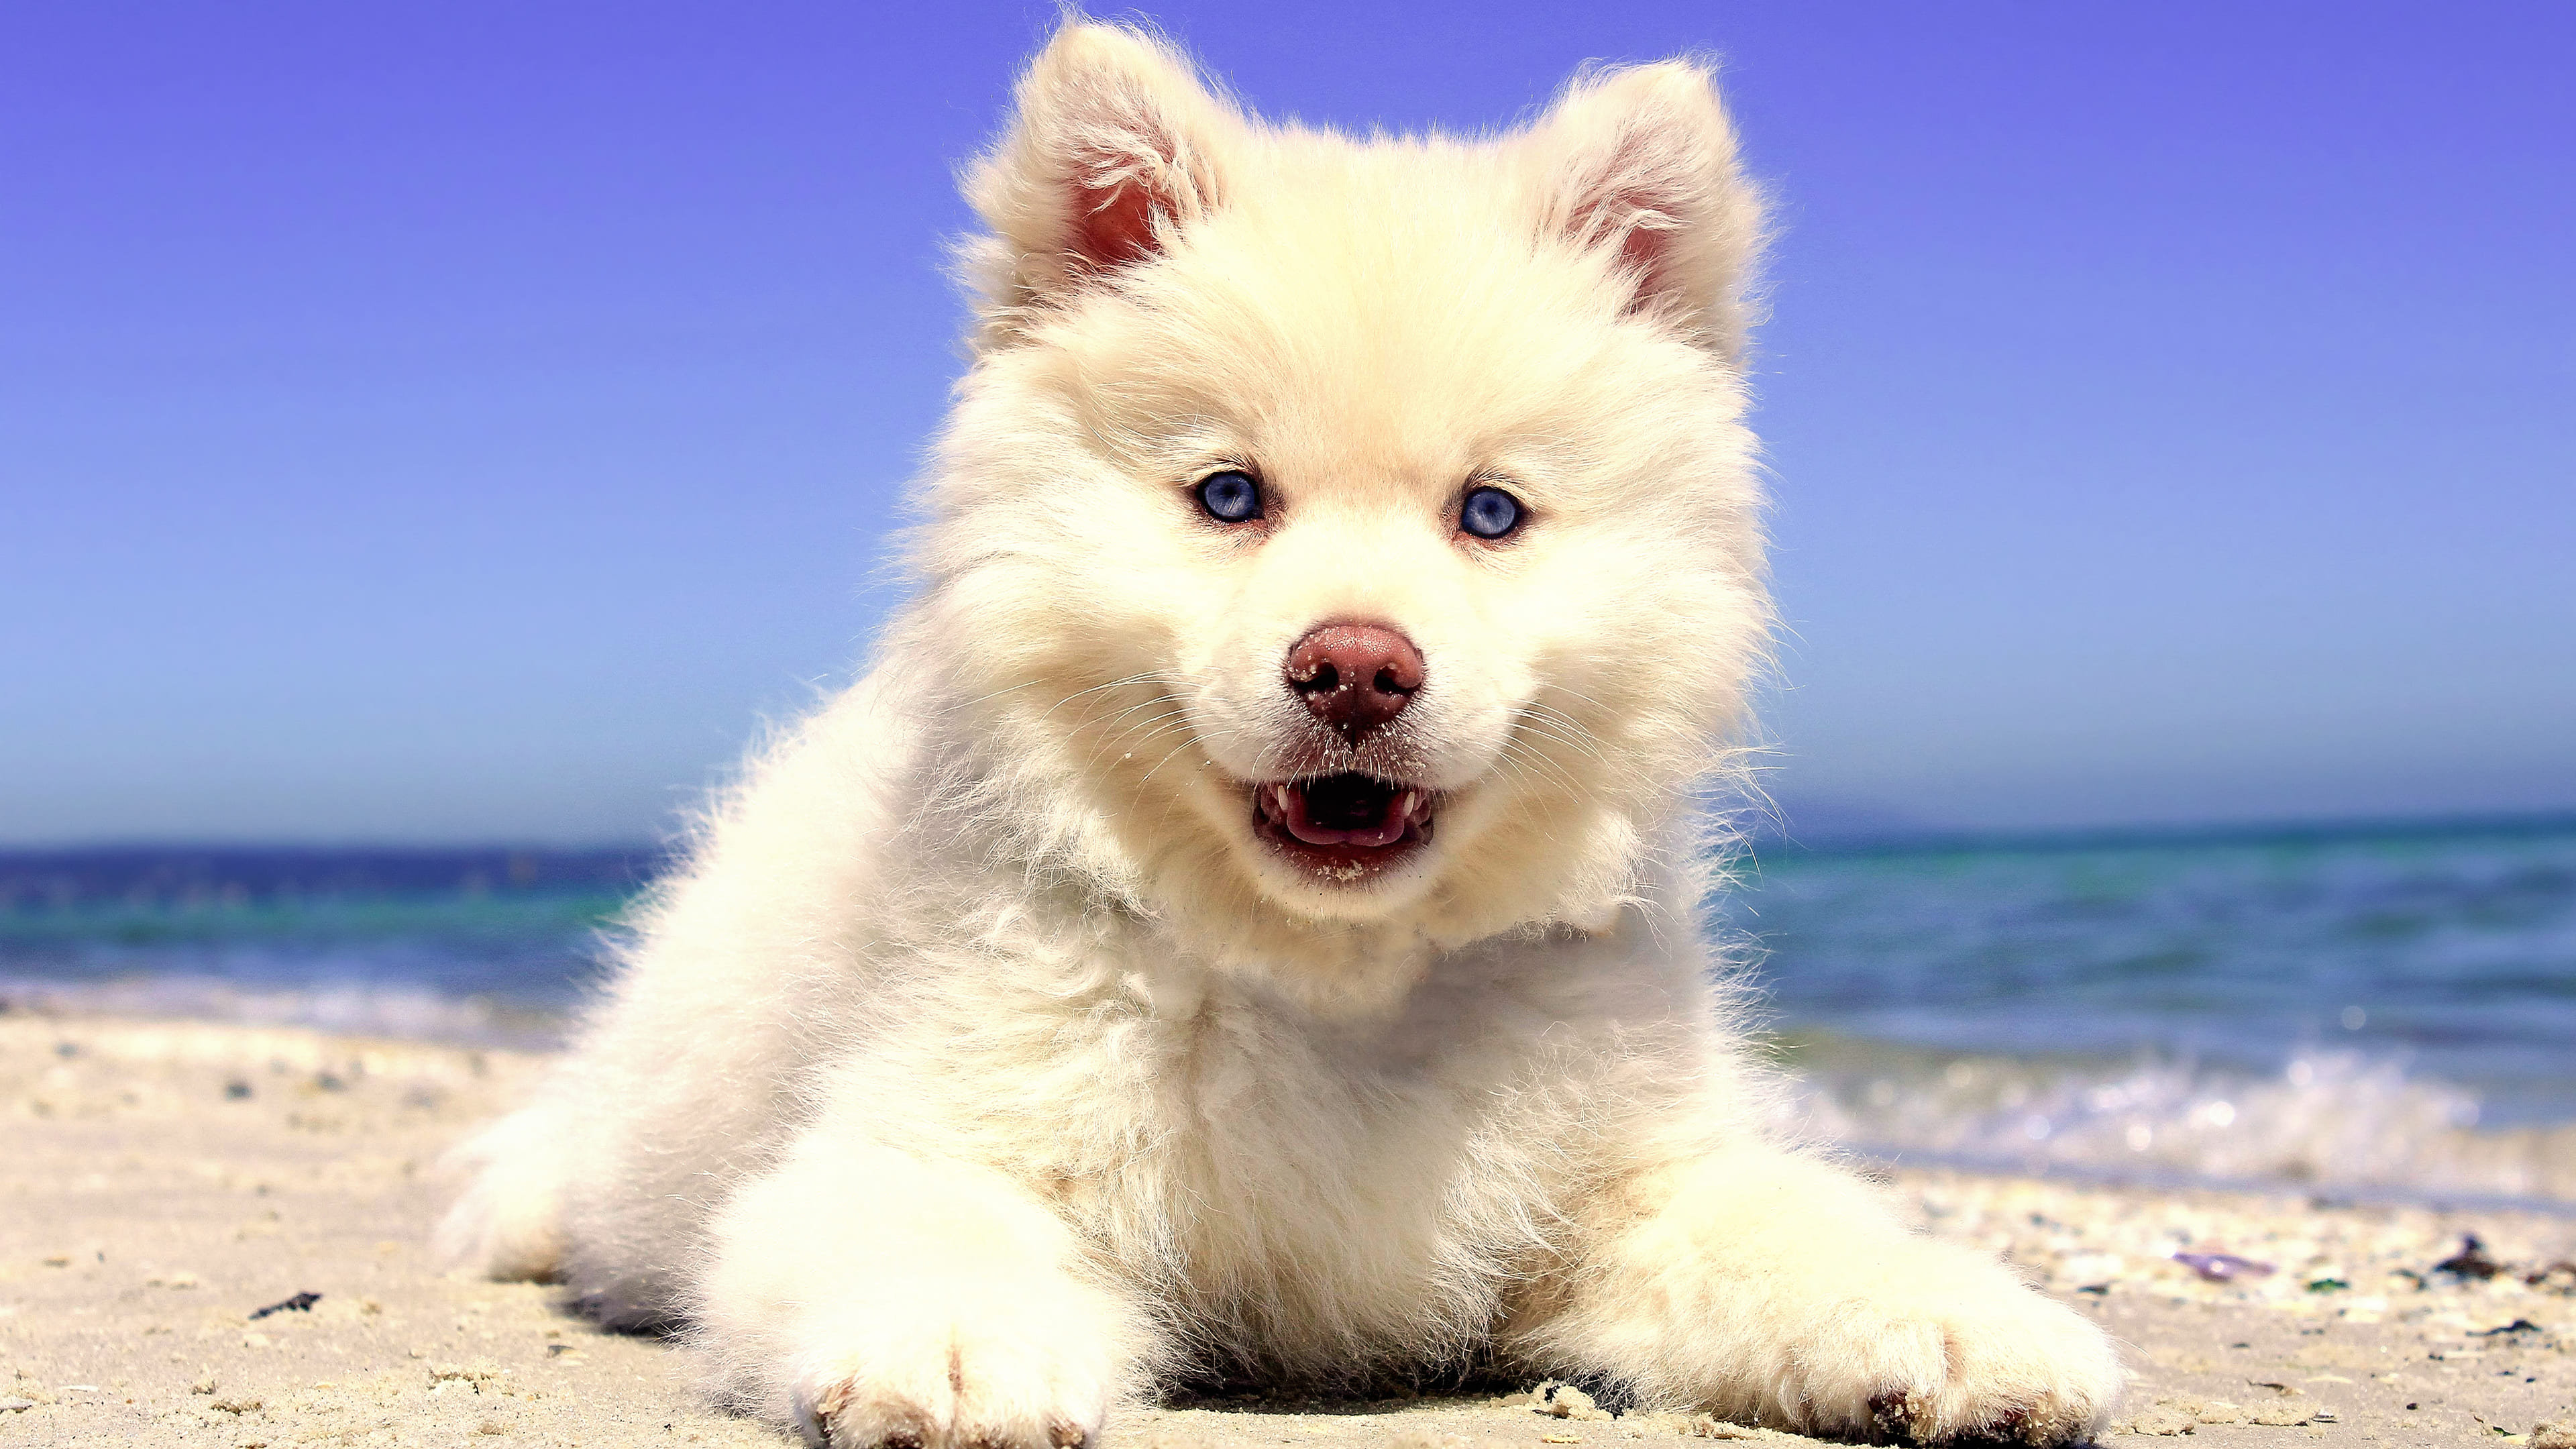 4k puppy beach wallpaper 68267